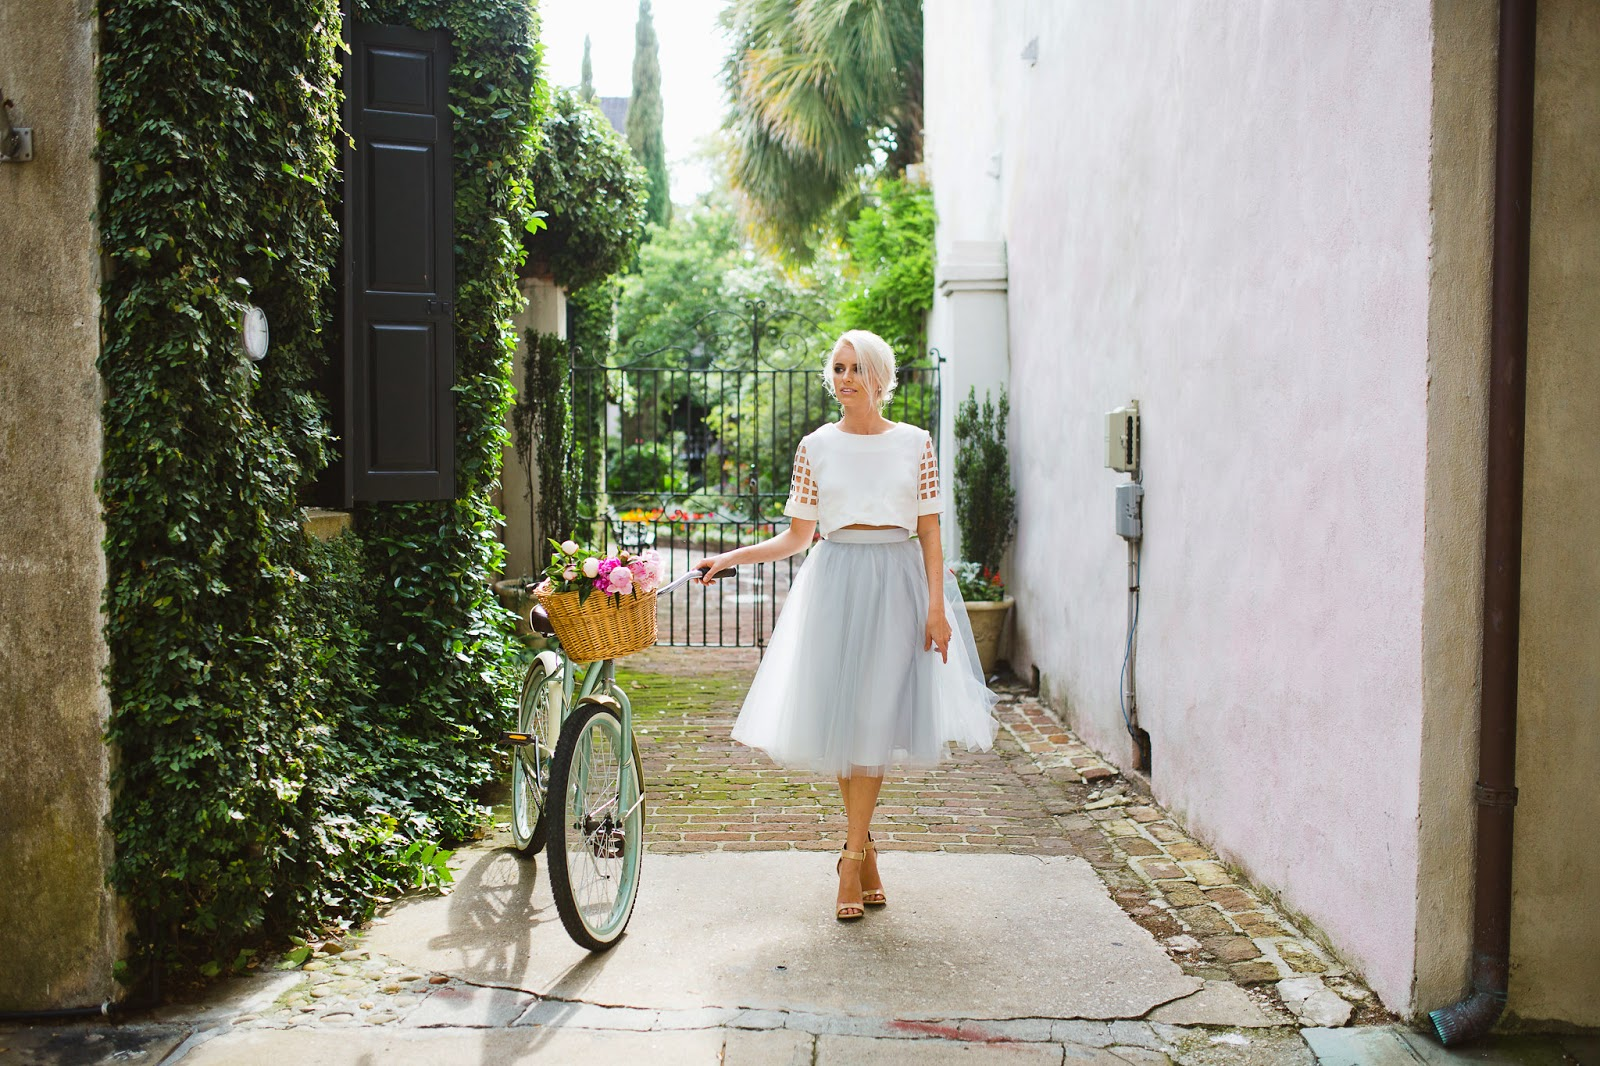 "downtown Charleston fashion blogger dannon k collard like the yogurt blog street style trend tulle skirt alexandra grecco pale gray 30"" tobi fair and square top crop white nude 2 strap sandals steve madden marlenee cobblestone streets rome europe european florals spring vintage bike platinum hair updo pretty"